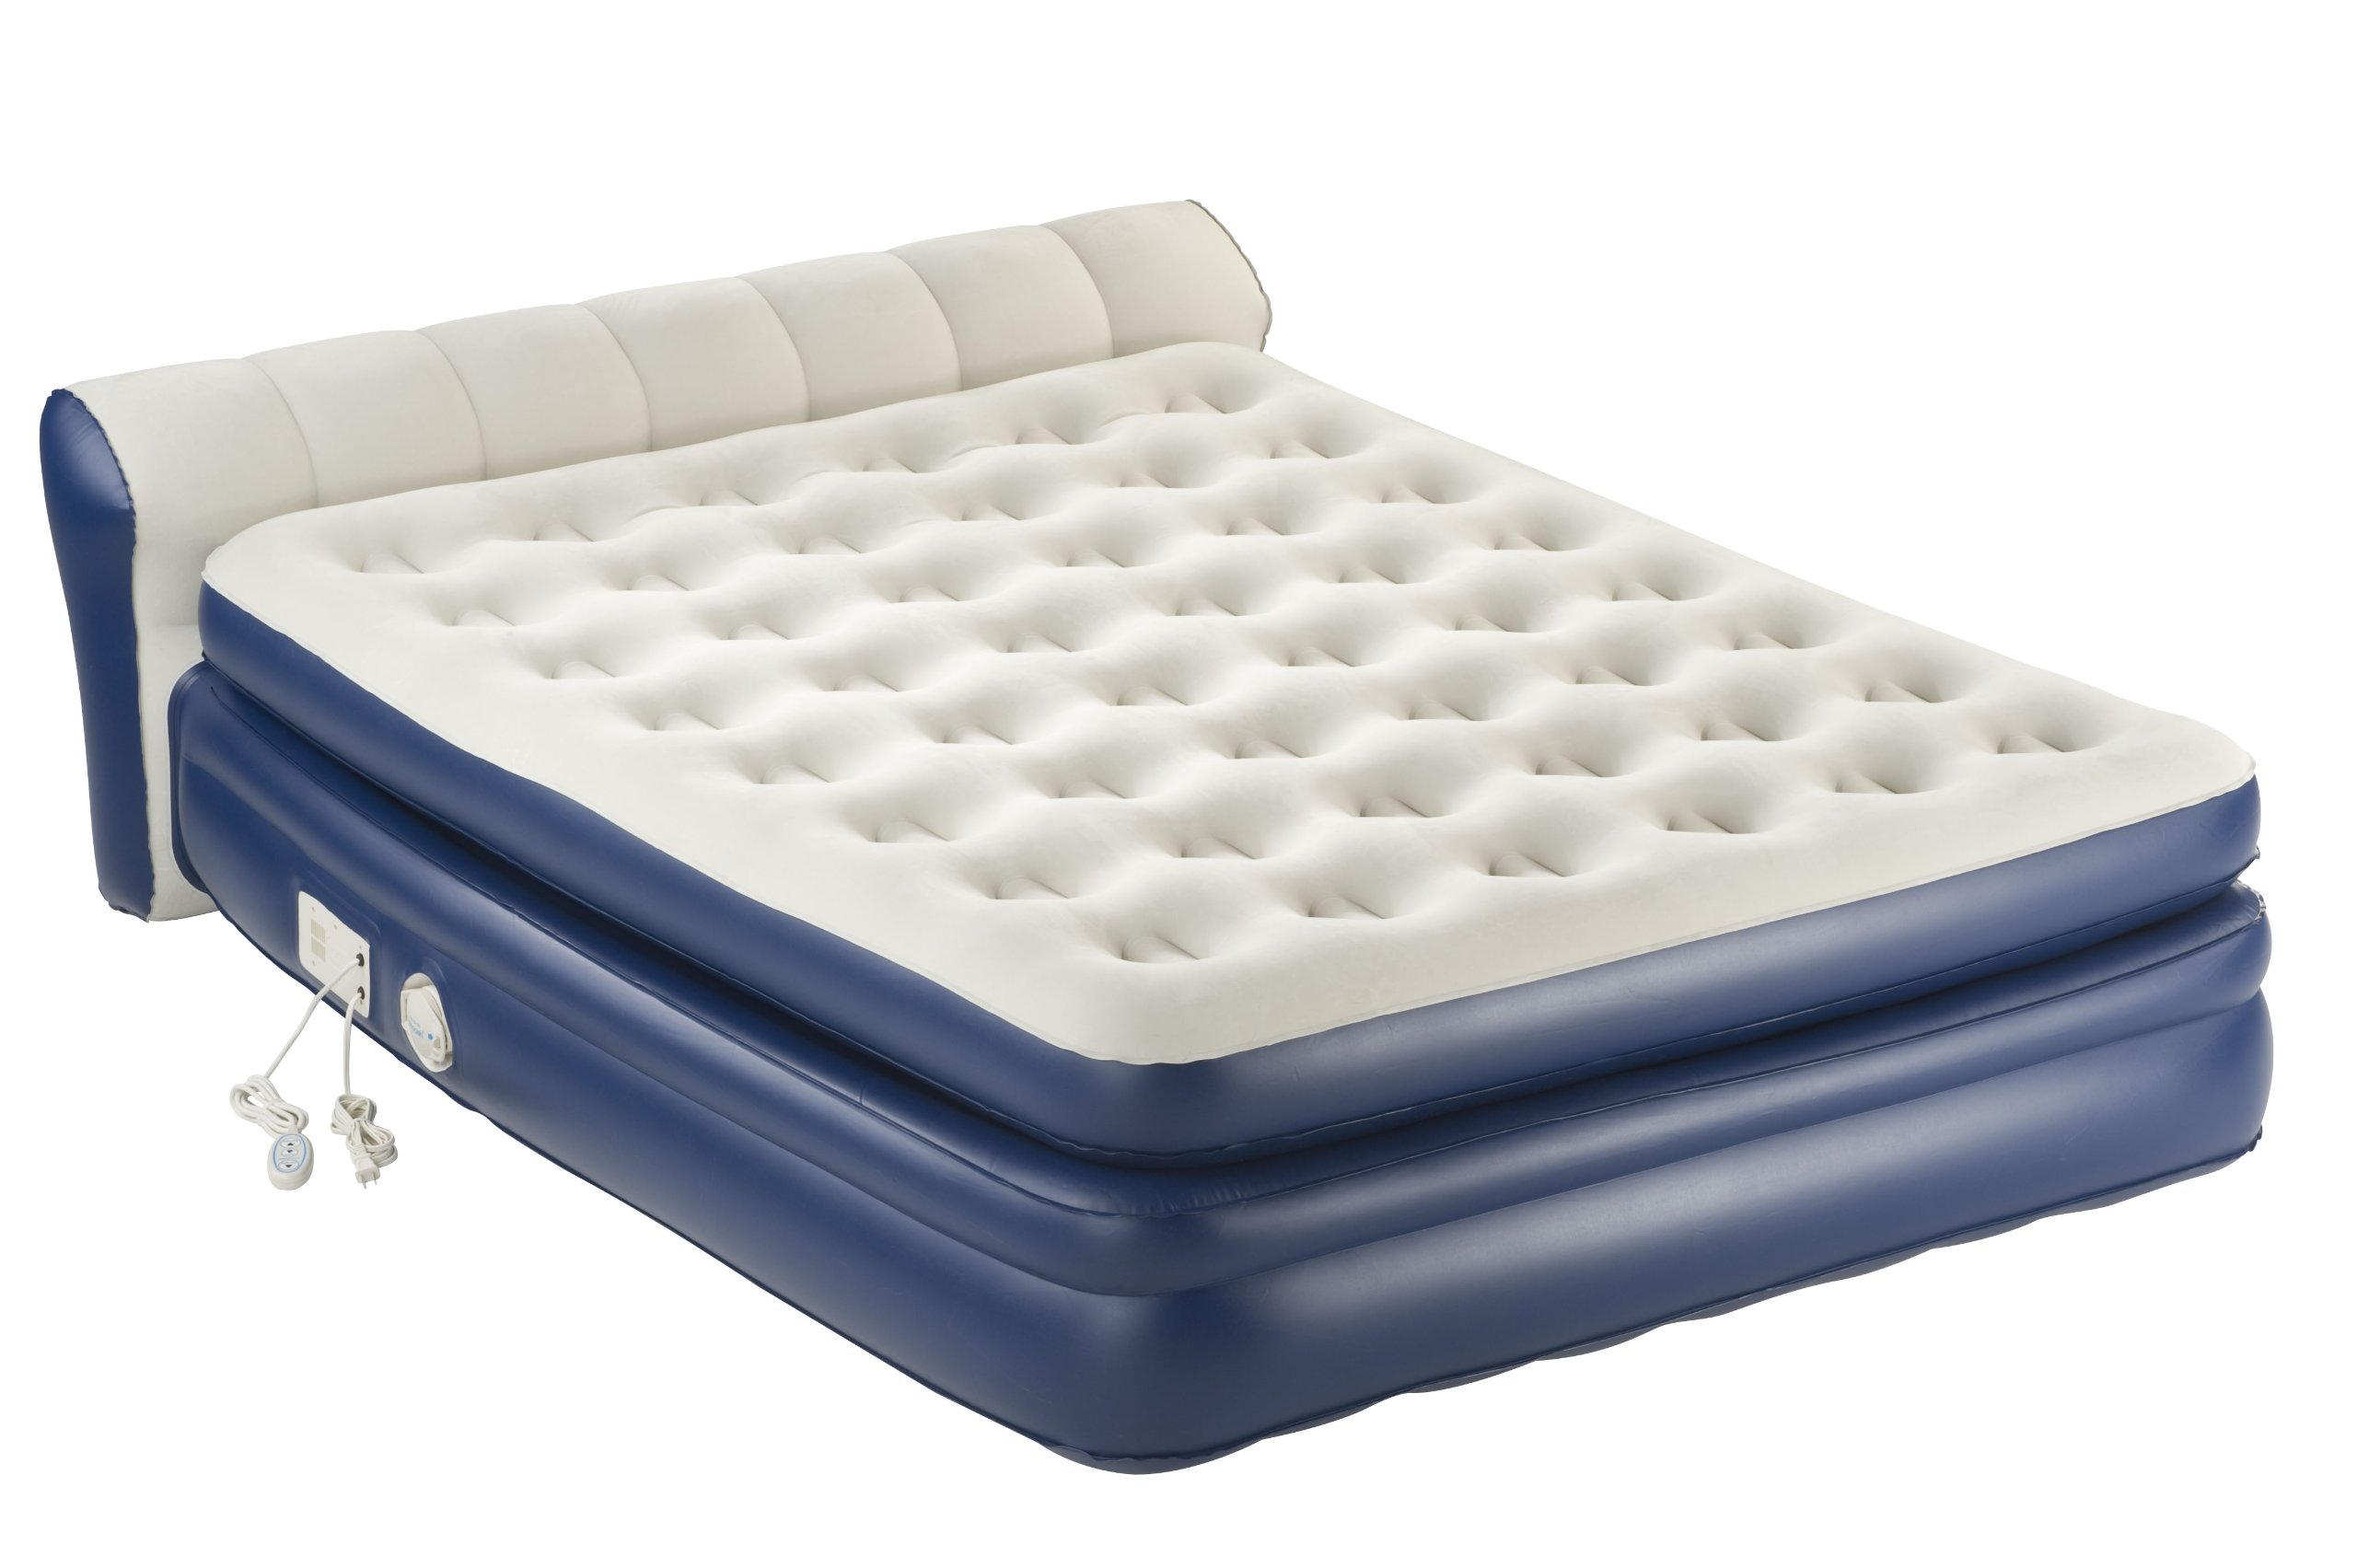 AeroBed Premier Bed with Headboard